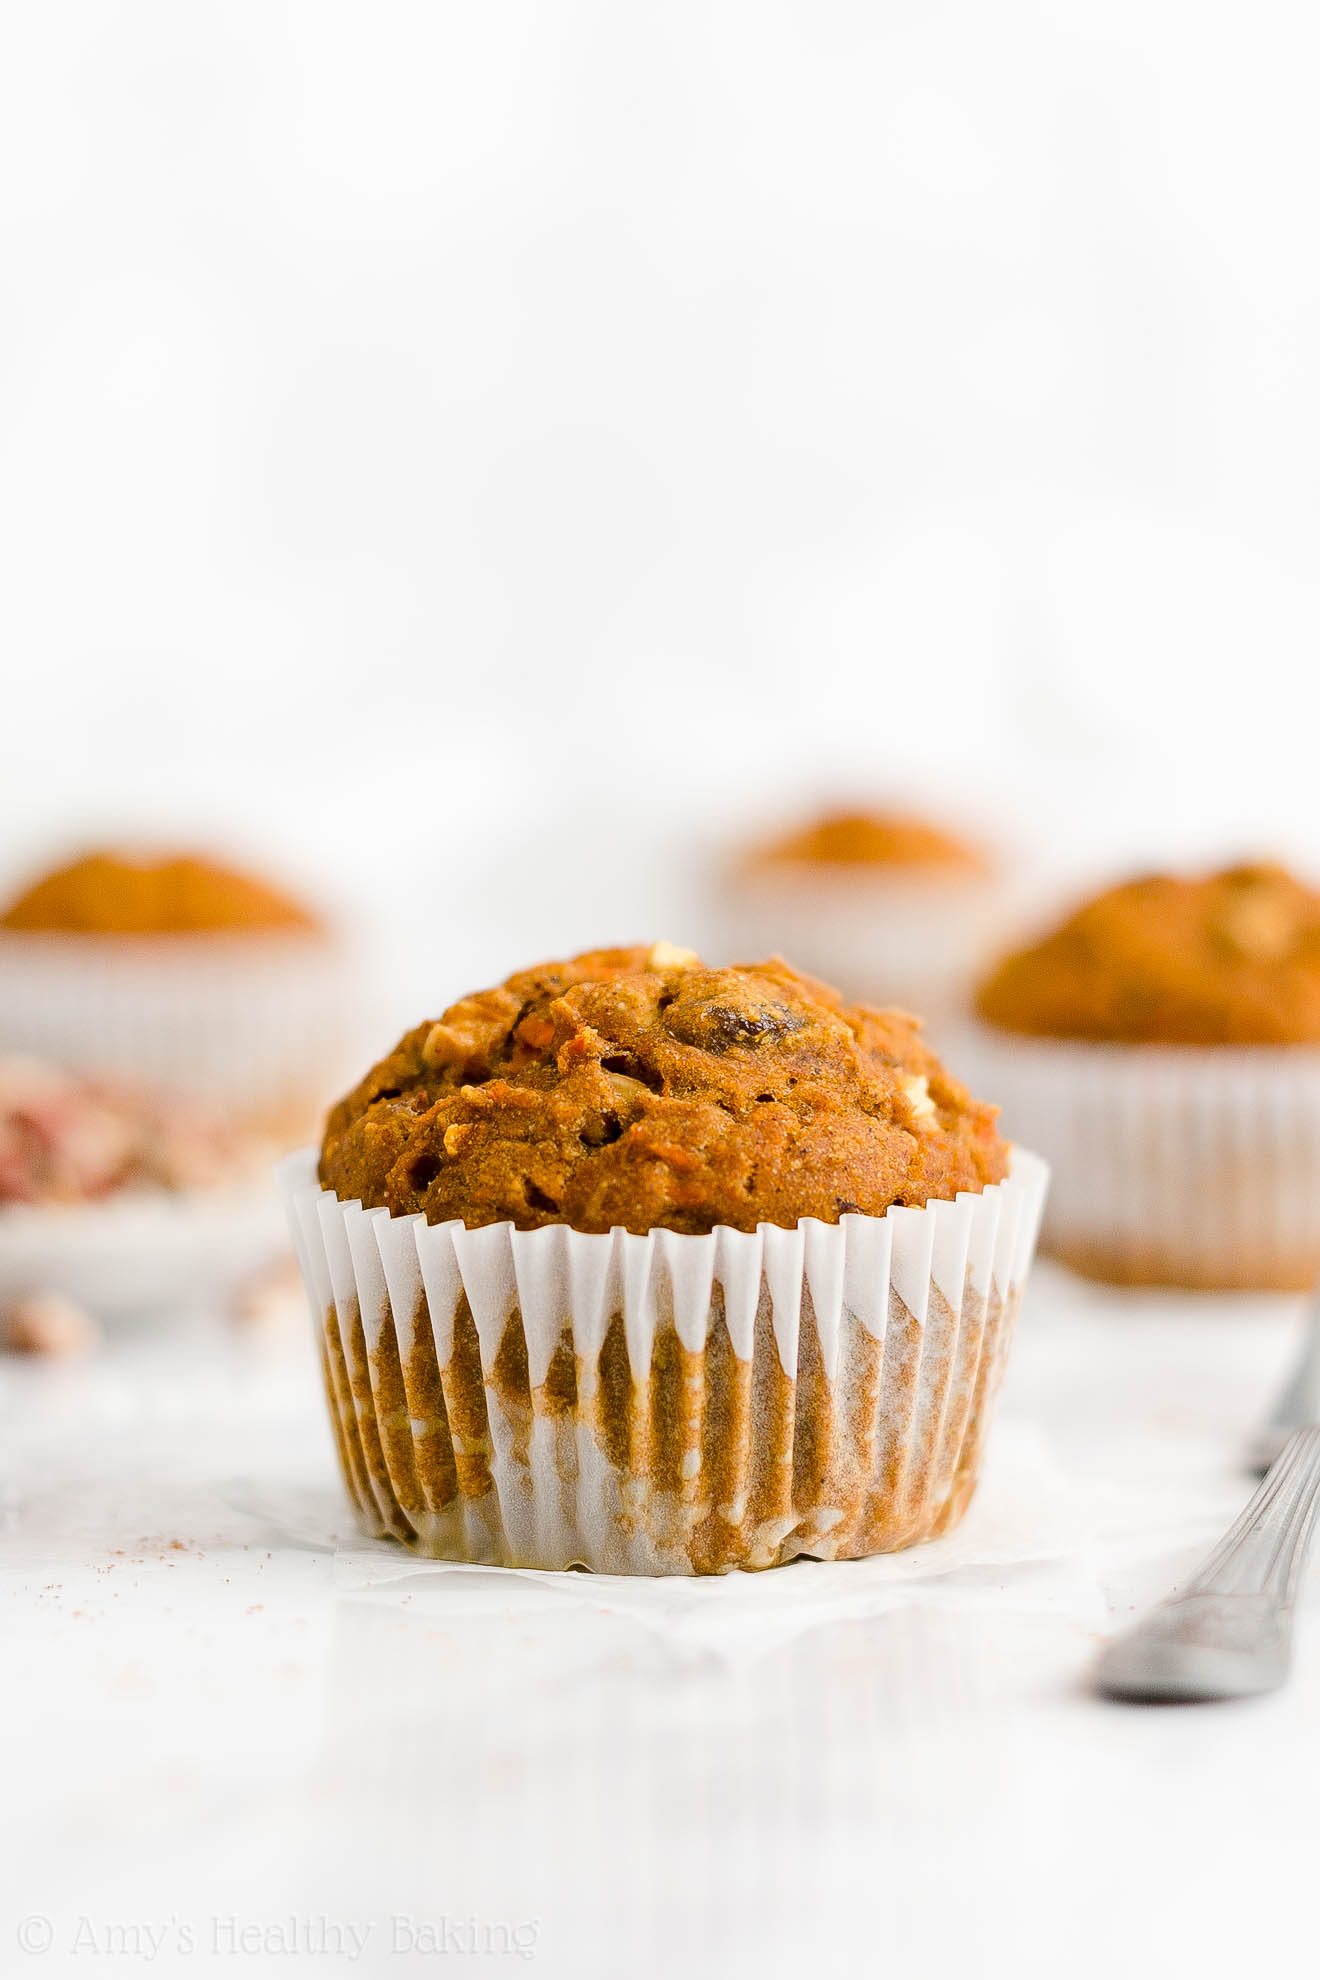 Best Easy Healthy Gluten Free Sugar Free Pumpkin Spice Morning Glory Muffins